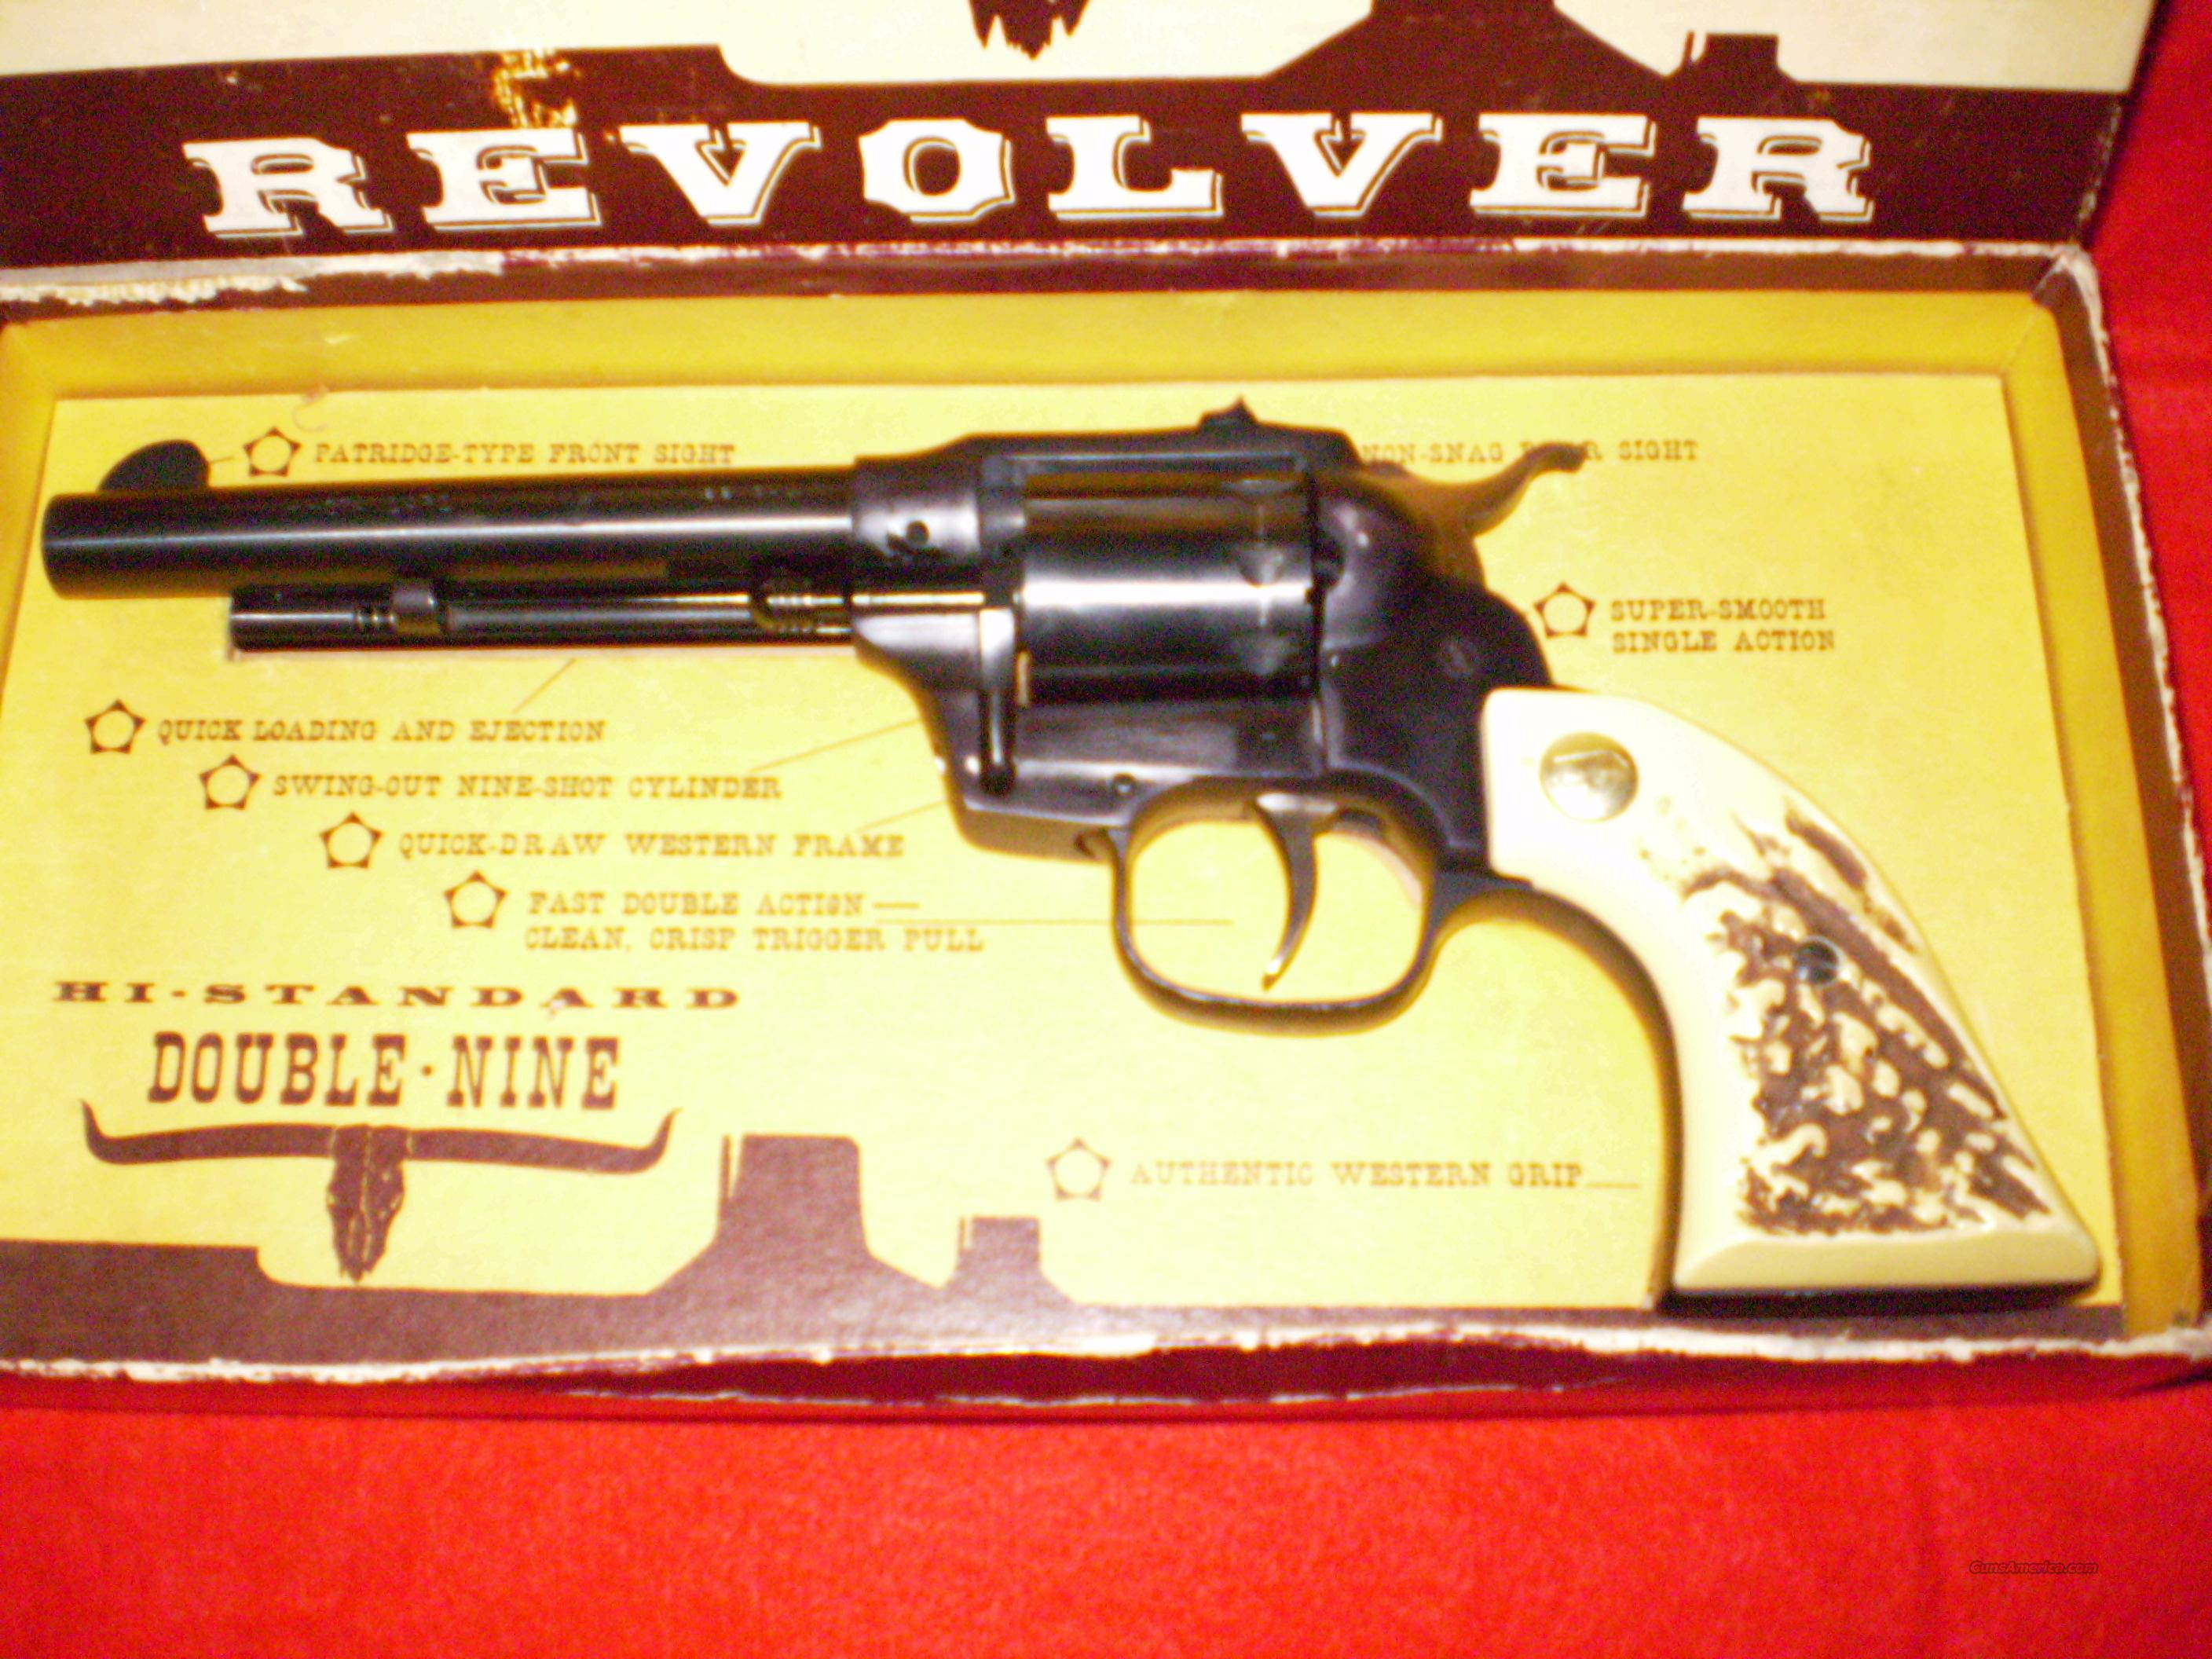 High Standard Double-Nine Model W-104 22LR  Guns > Pistols > High Standard Pistols